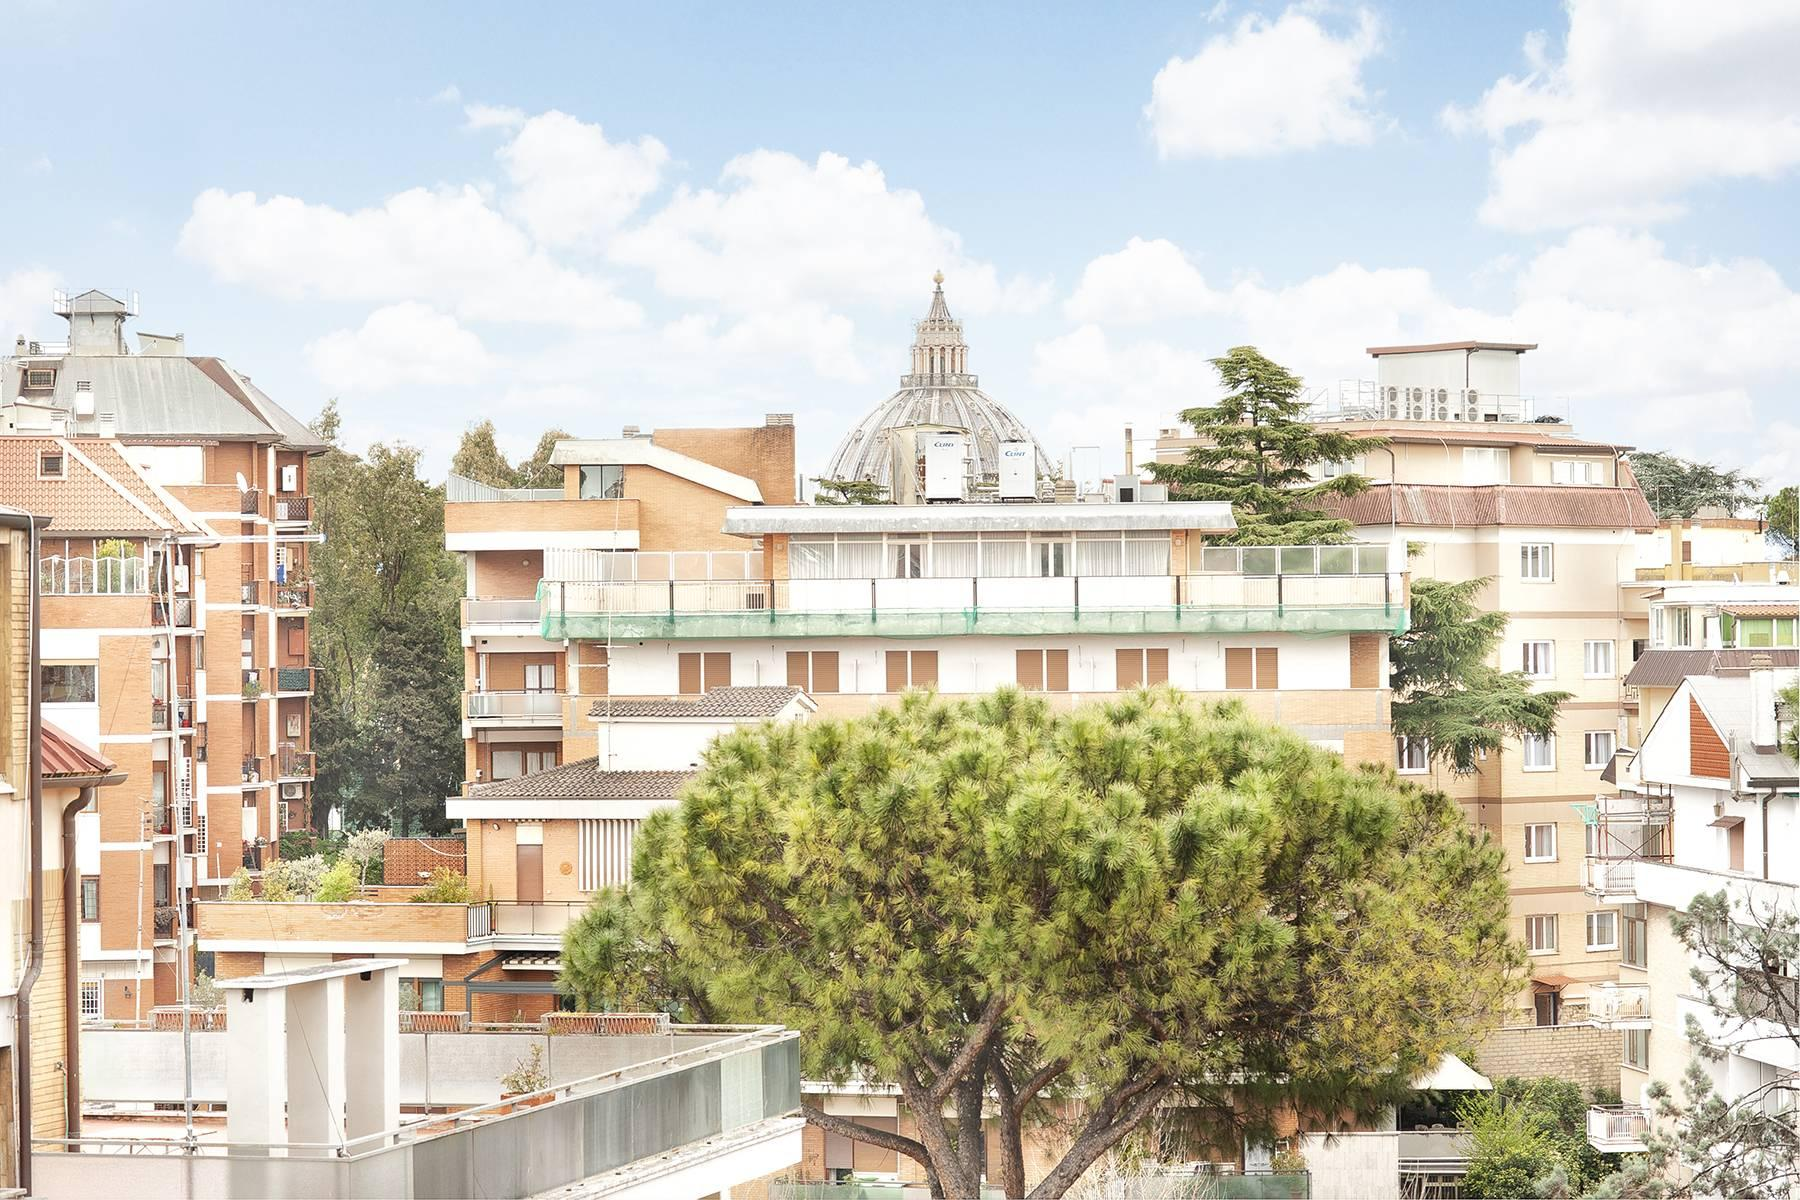 Stunning apartment a stone's throw from St. Peter's Basilica - 9